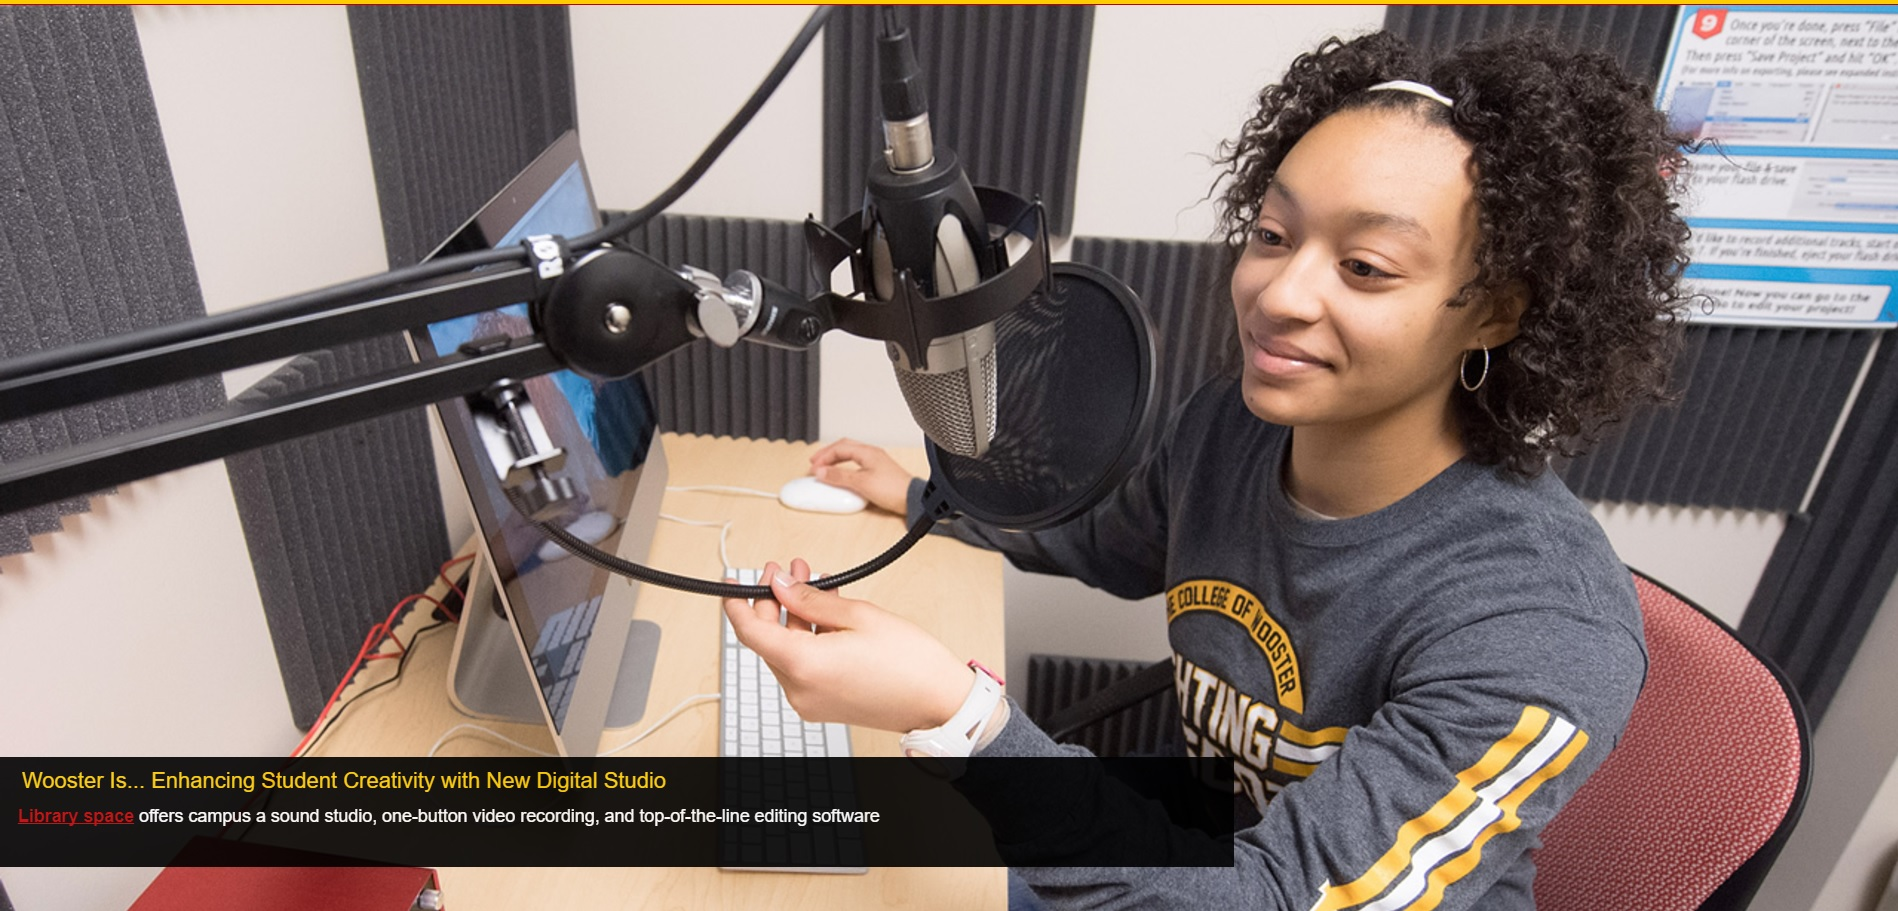 The College of Wooster's feature of the Digital Studio on their website.